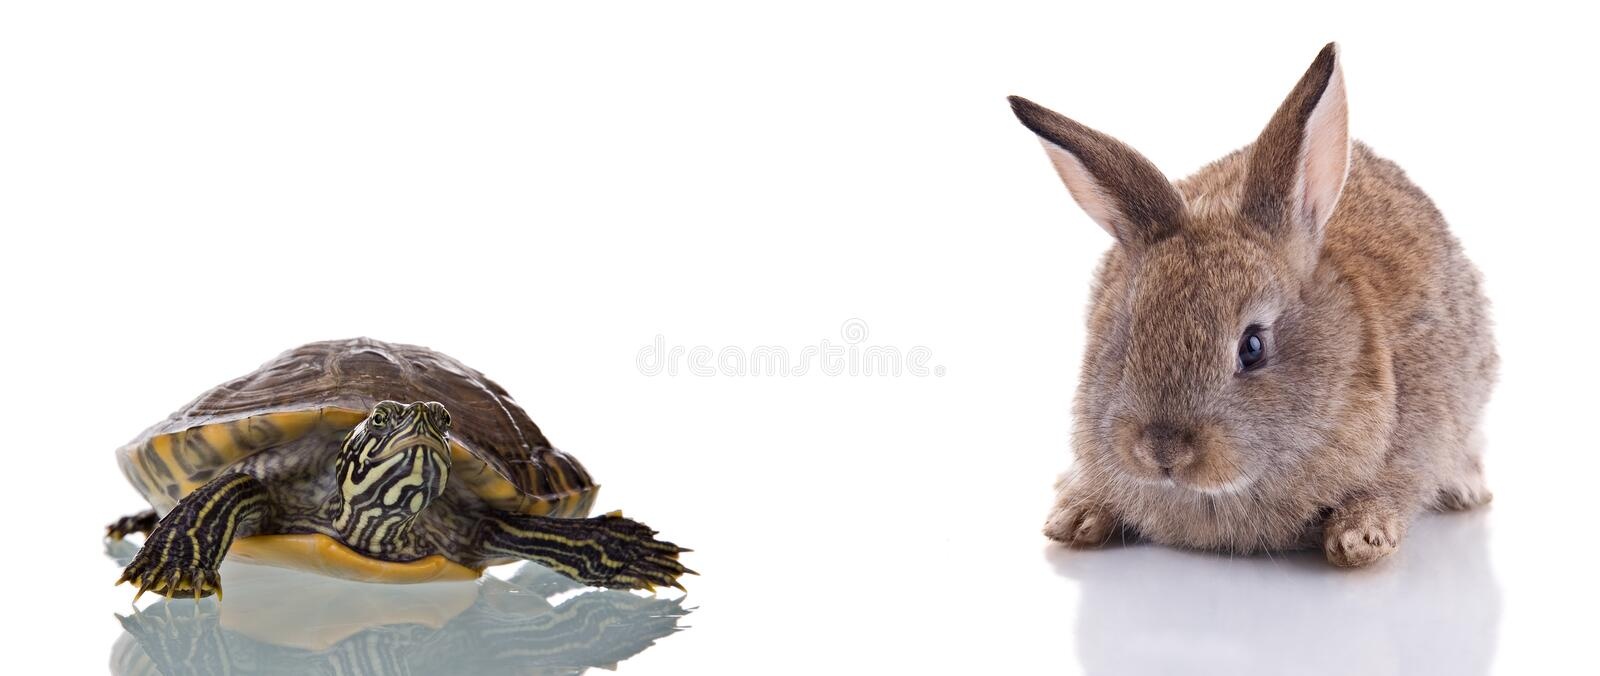 Lapin et tortue images stock